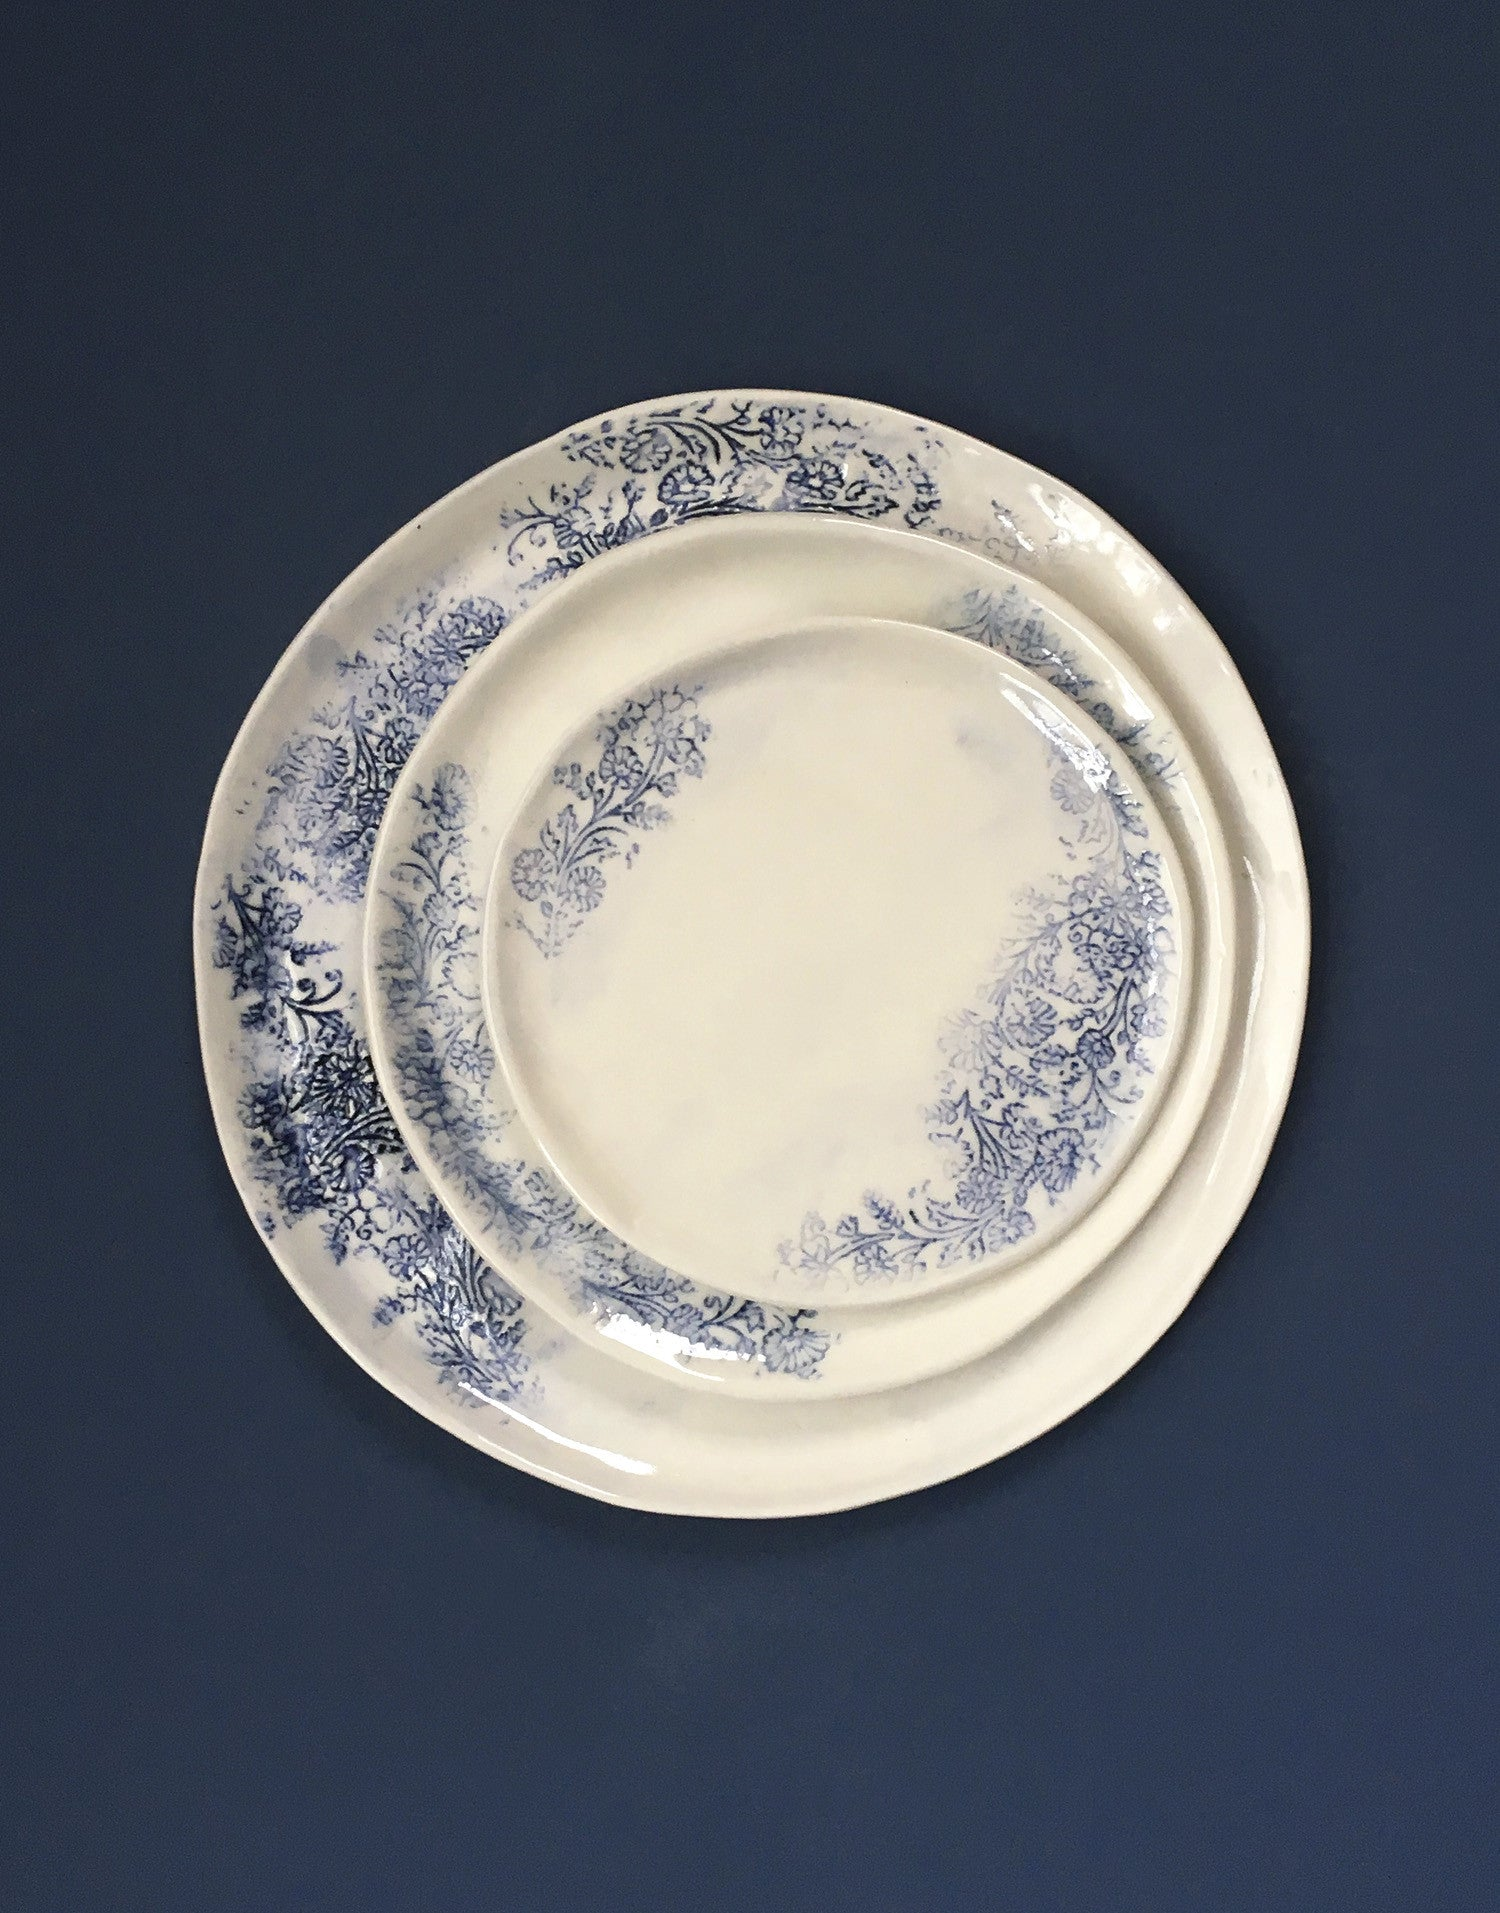 DBO HOME Handmade Porcelain Kashmir Dinnerware & DBO HOME Handmade Porcelain Kashmir Dinner Salad and Bread Plates